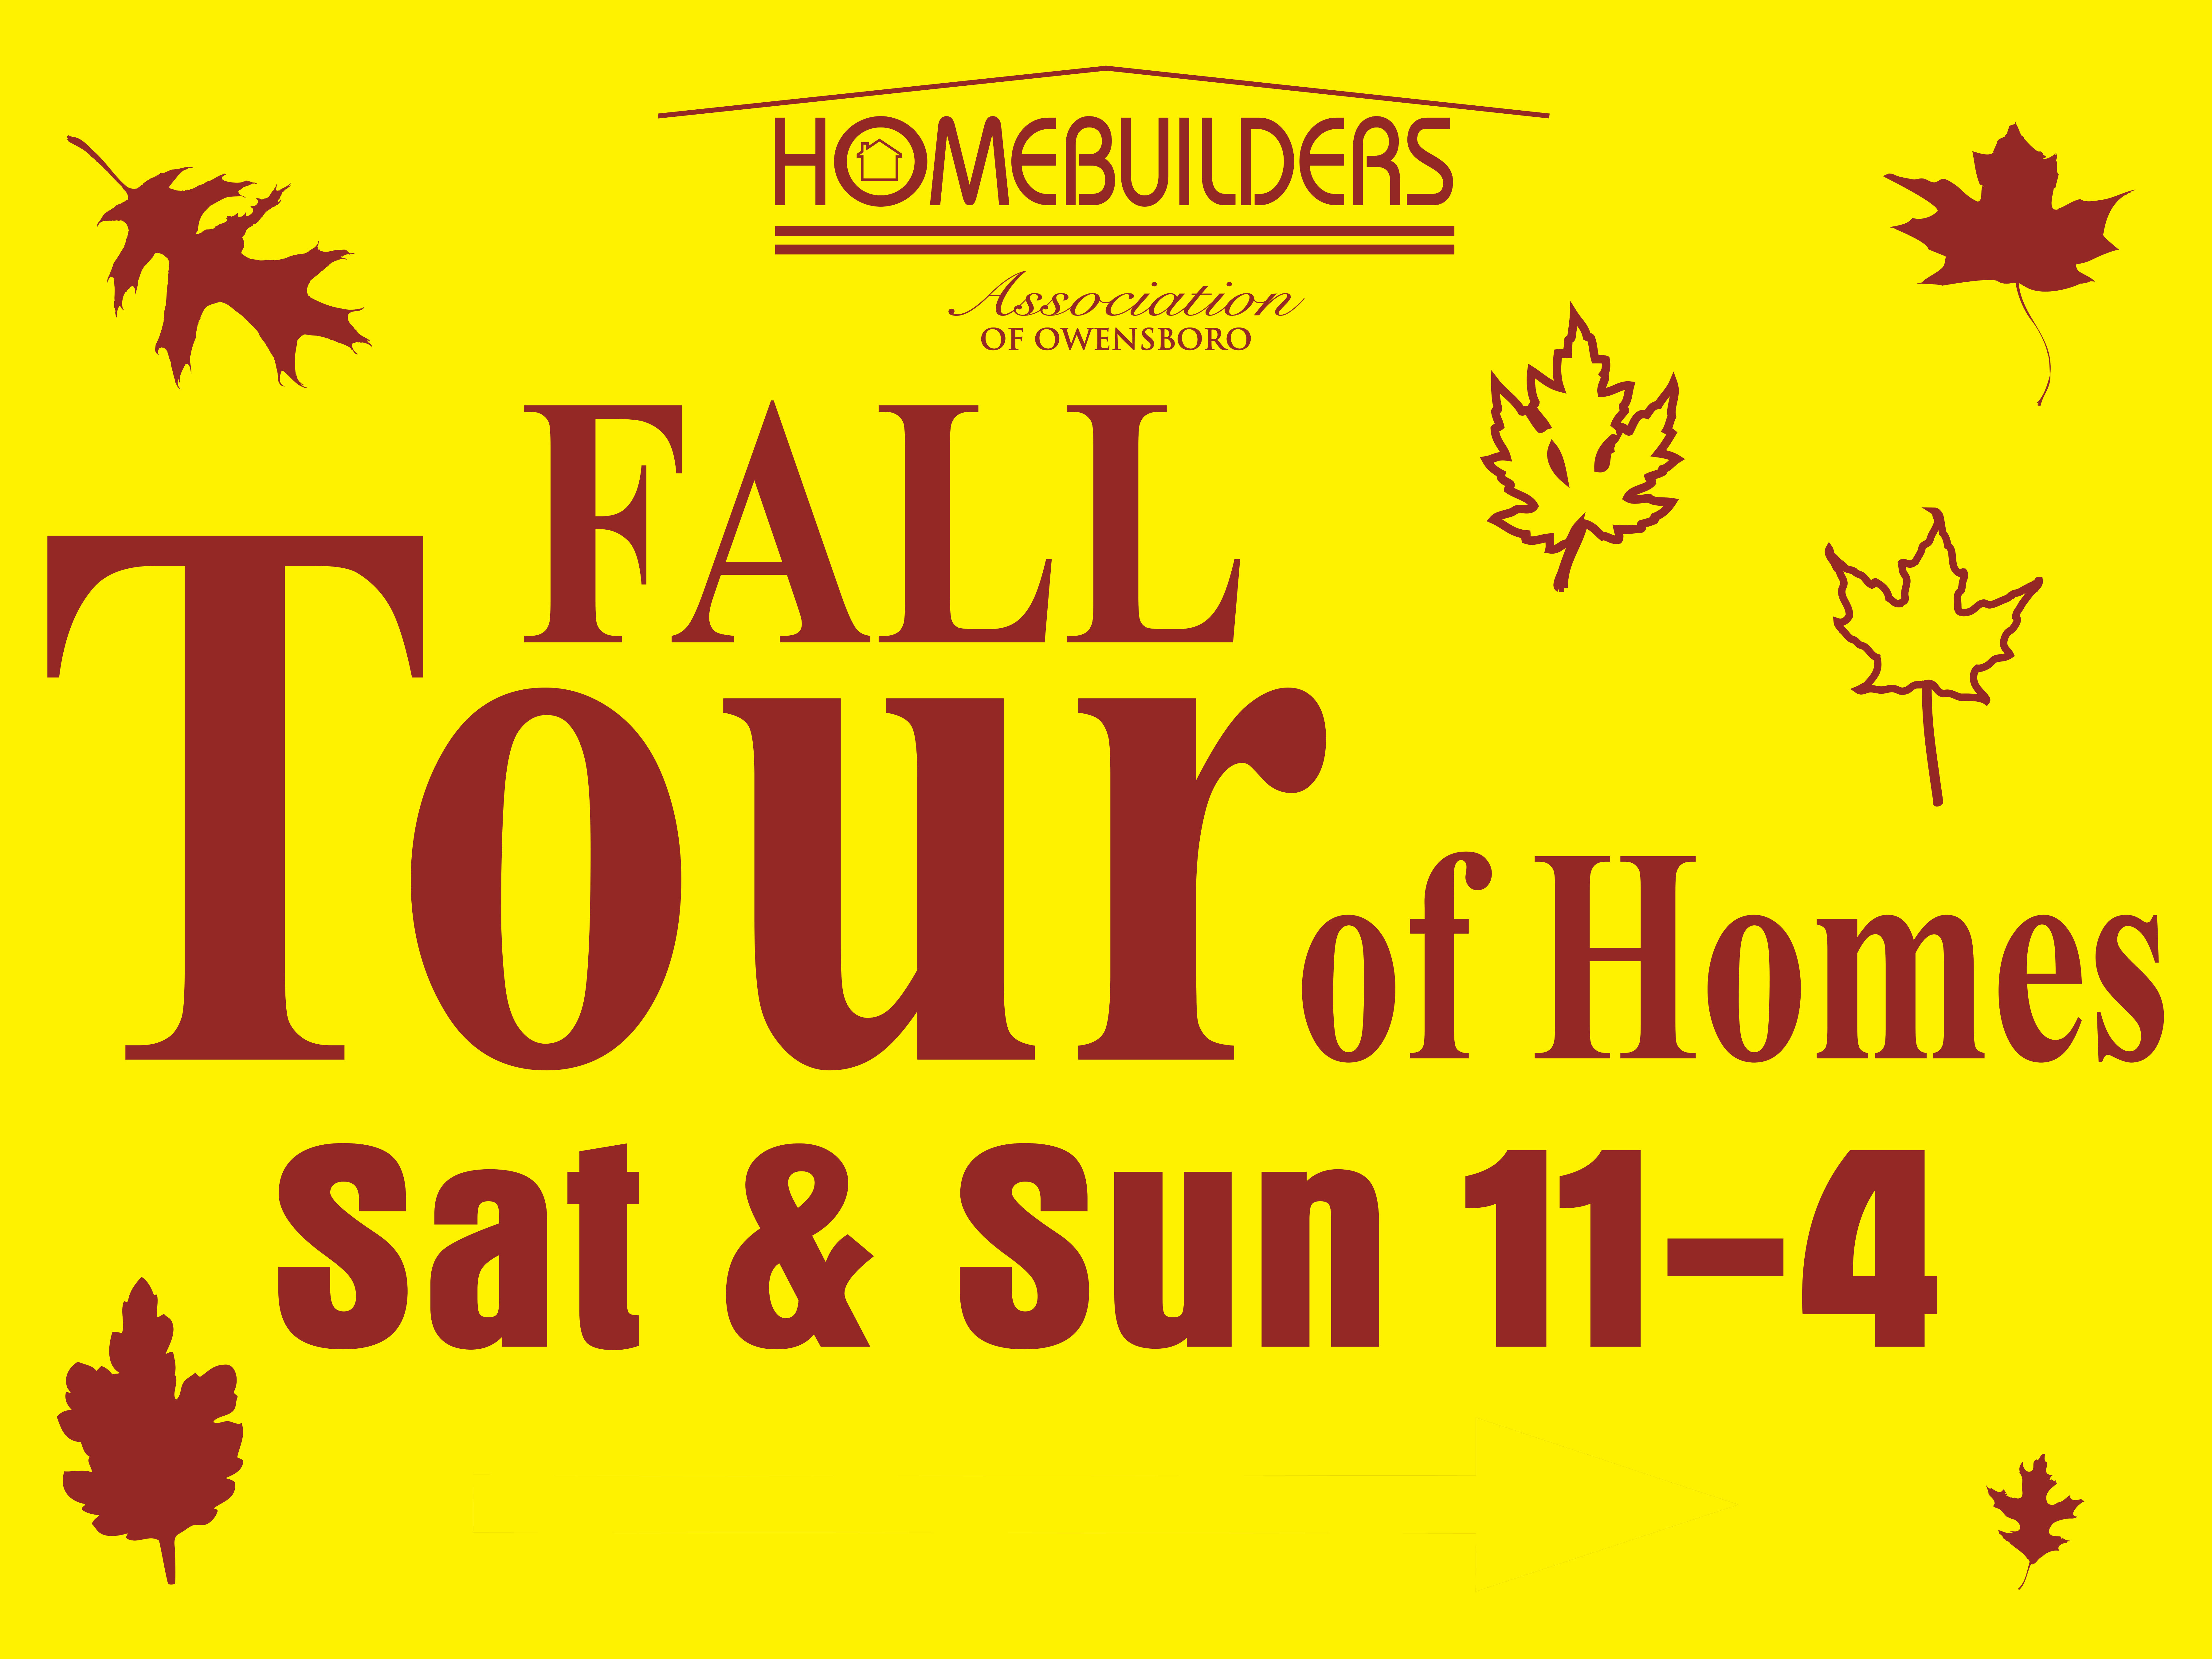 homebuilders fall brown on yellow18x24 pdf right